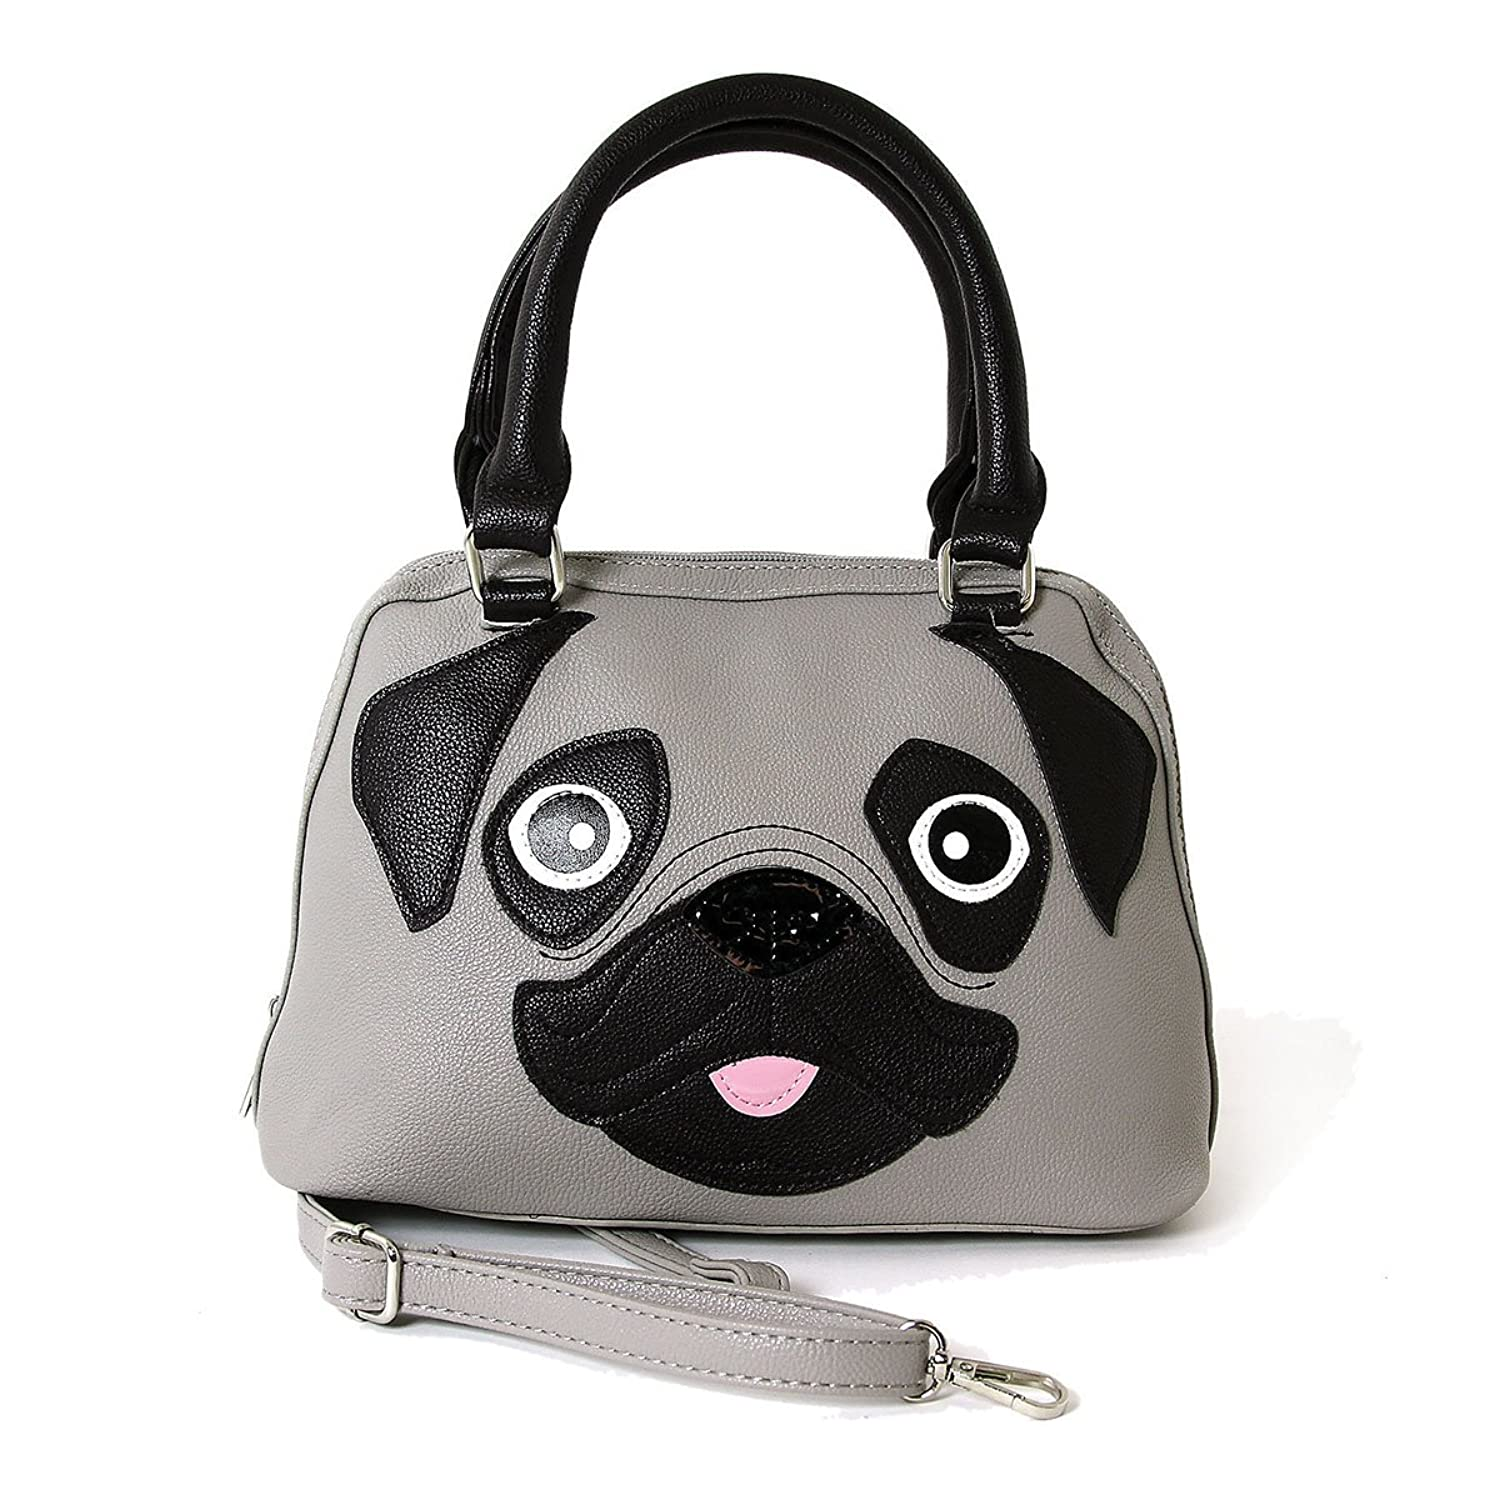 Cute Little Pug Puppy Satchel Handbag